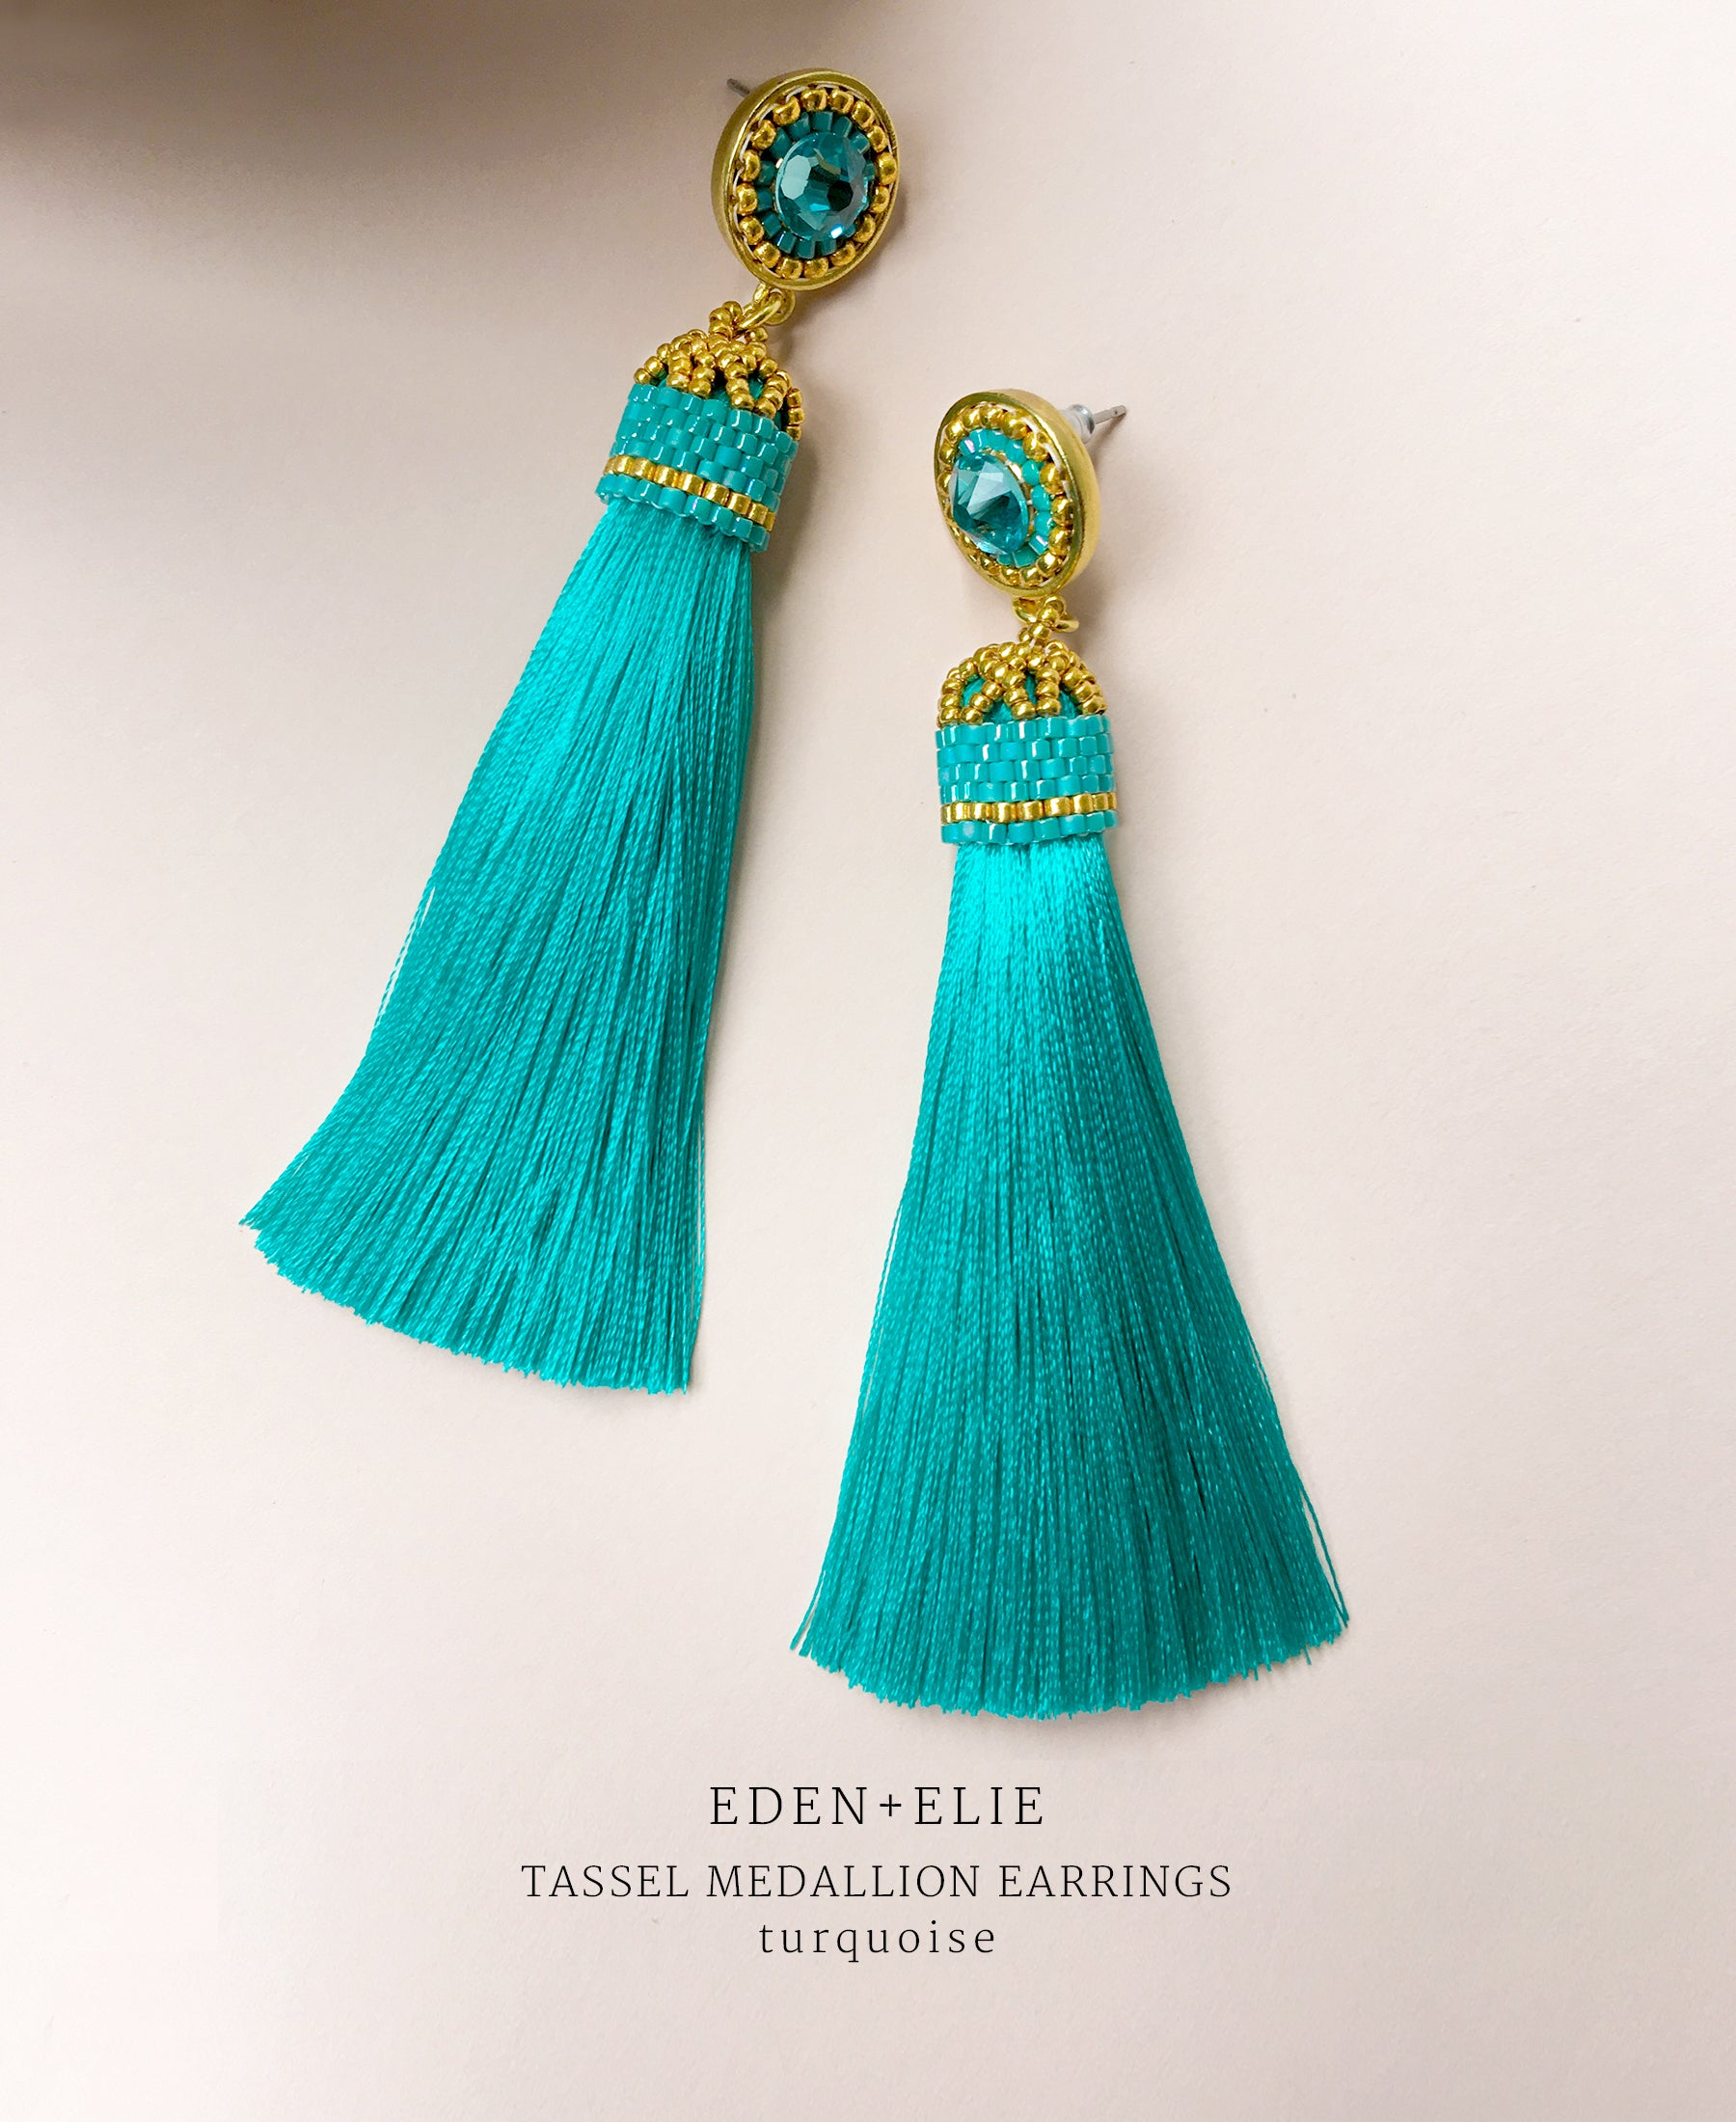 EDEN + ELIE silk tassel statement earrings - turquoise